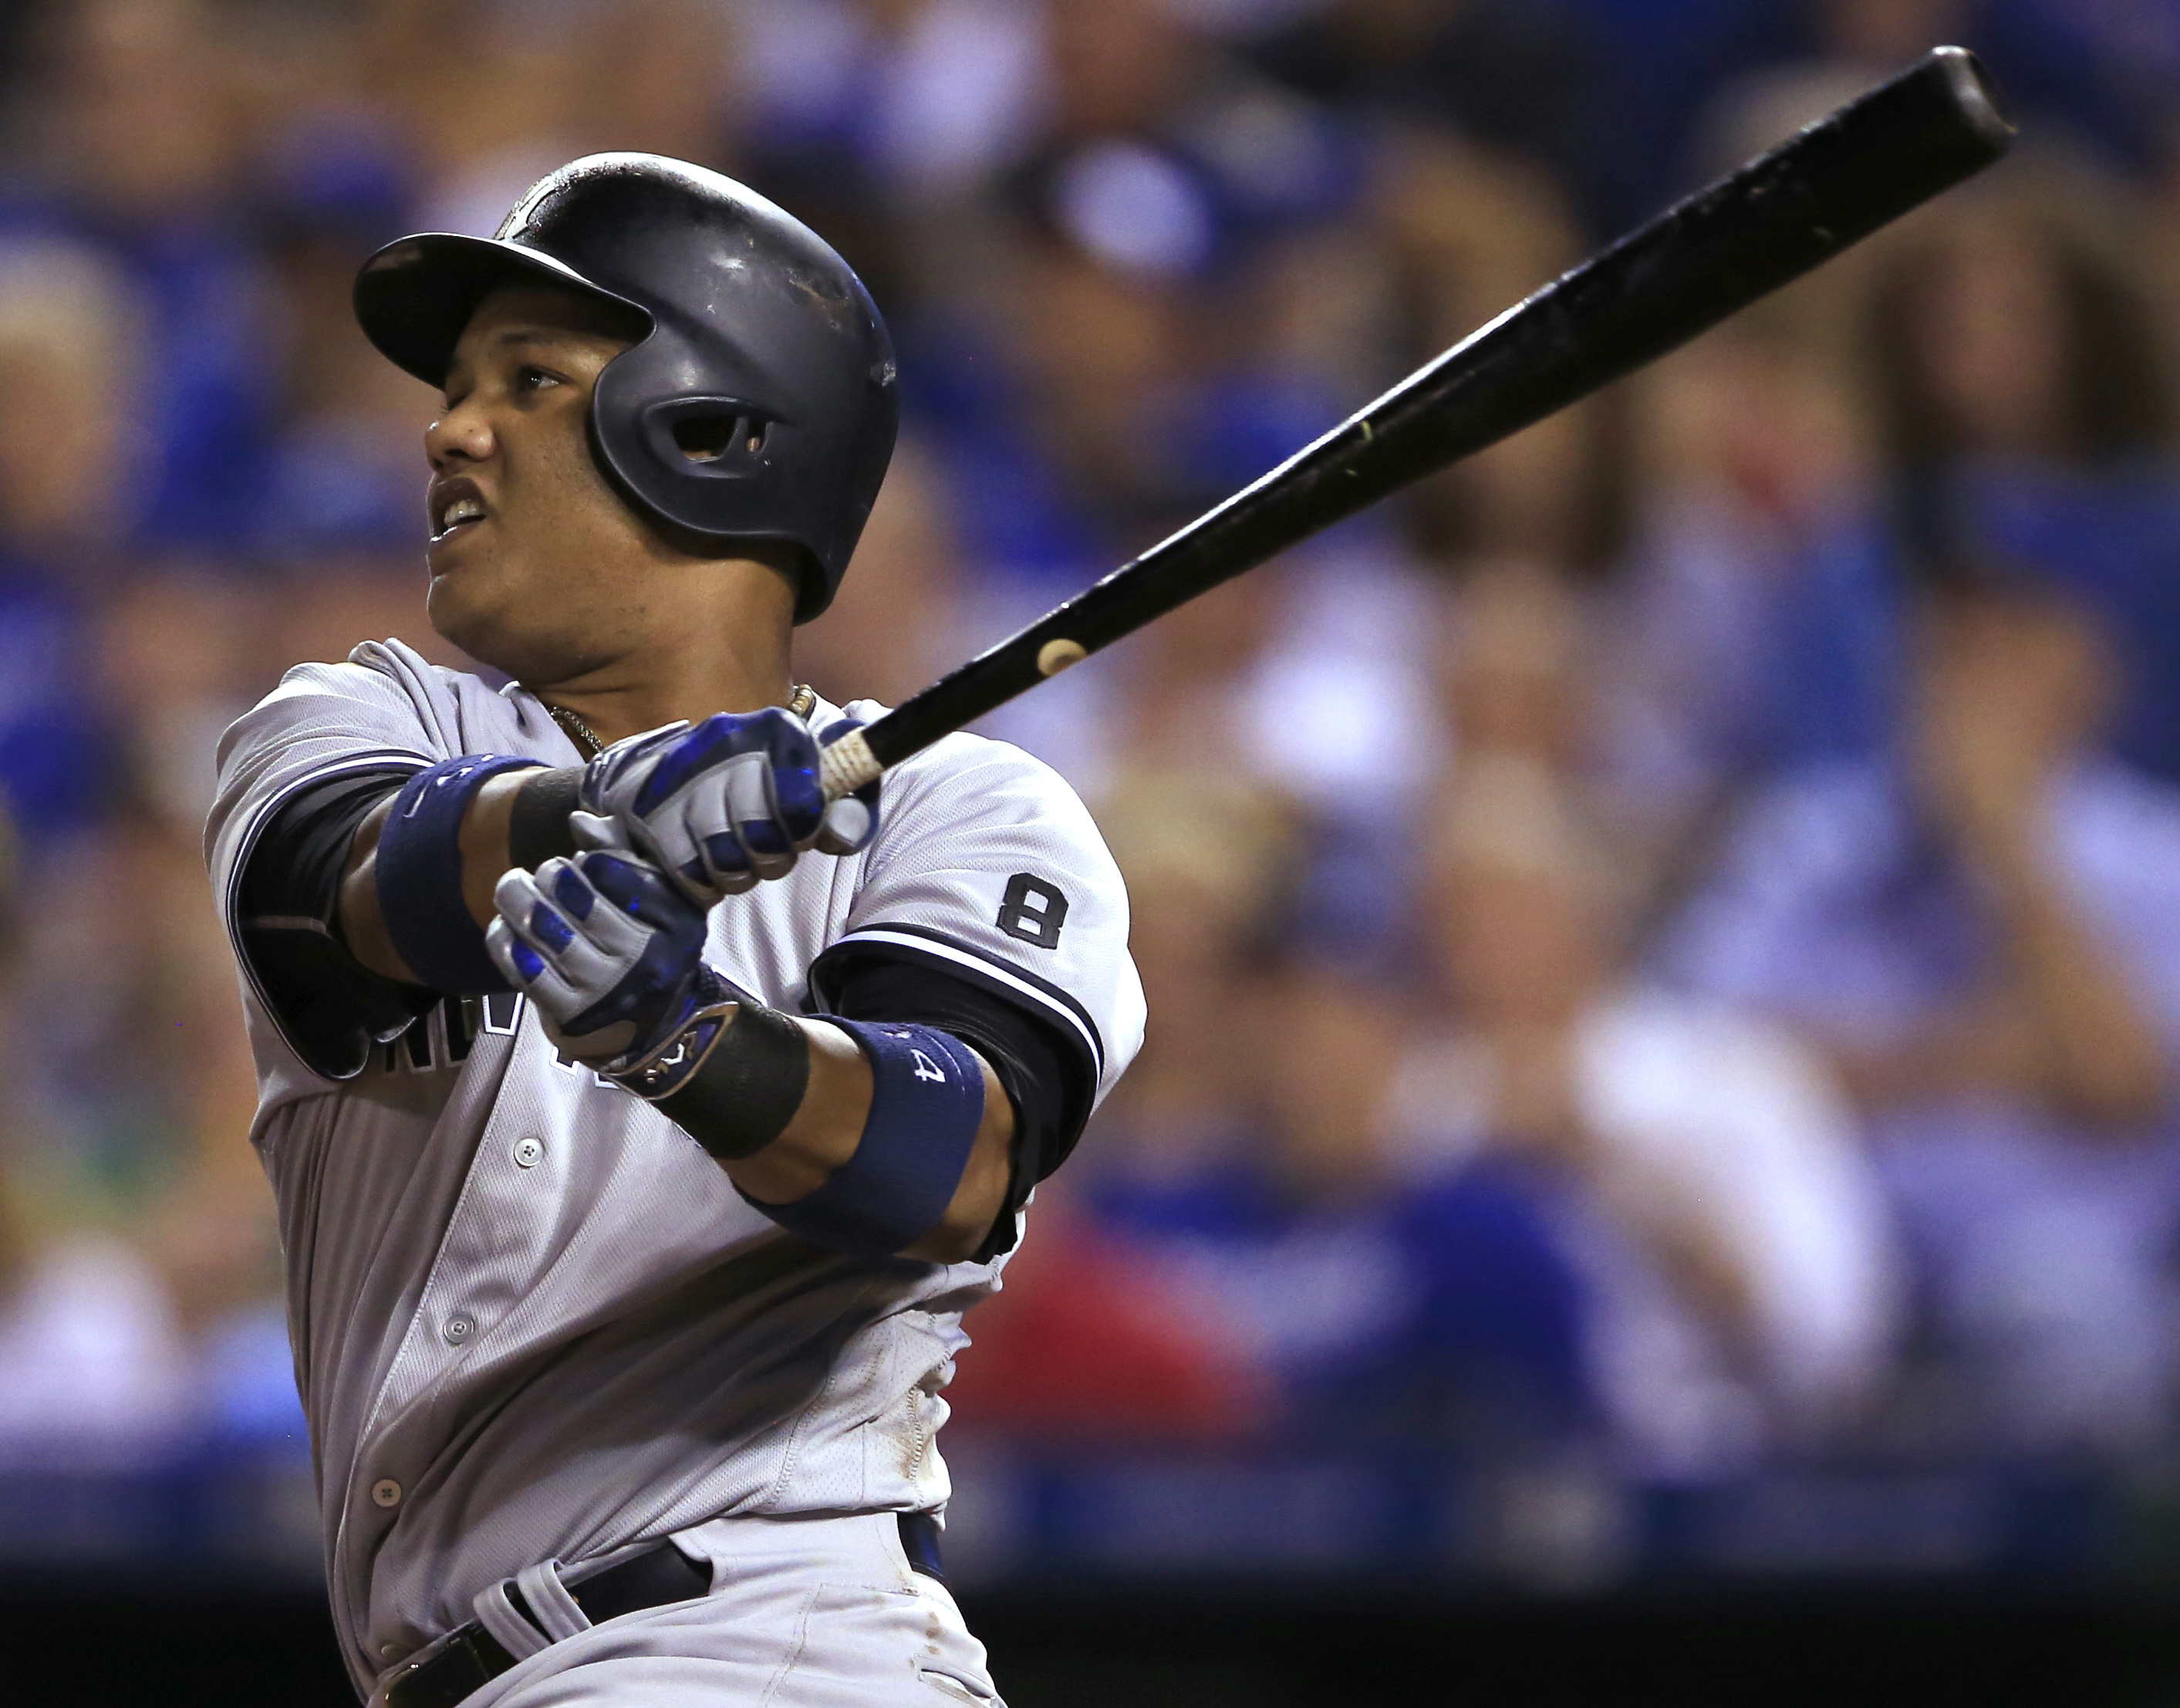 New York Yankees' Starlin Castro watches his three-run home run off Kansas City Royals starting pitcher Ian Kennedy during the sixth inning of a baseball game at Kauffman Stadium in Kansas City, Mo., Wednesday, Aug. 31, 2016. (AP Photo/Orlin Wagner)